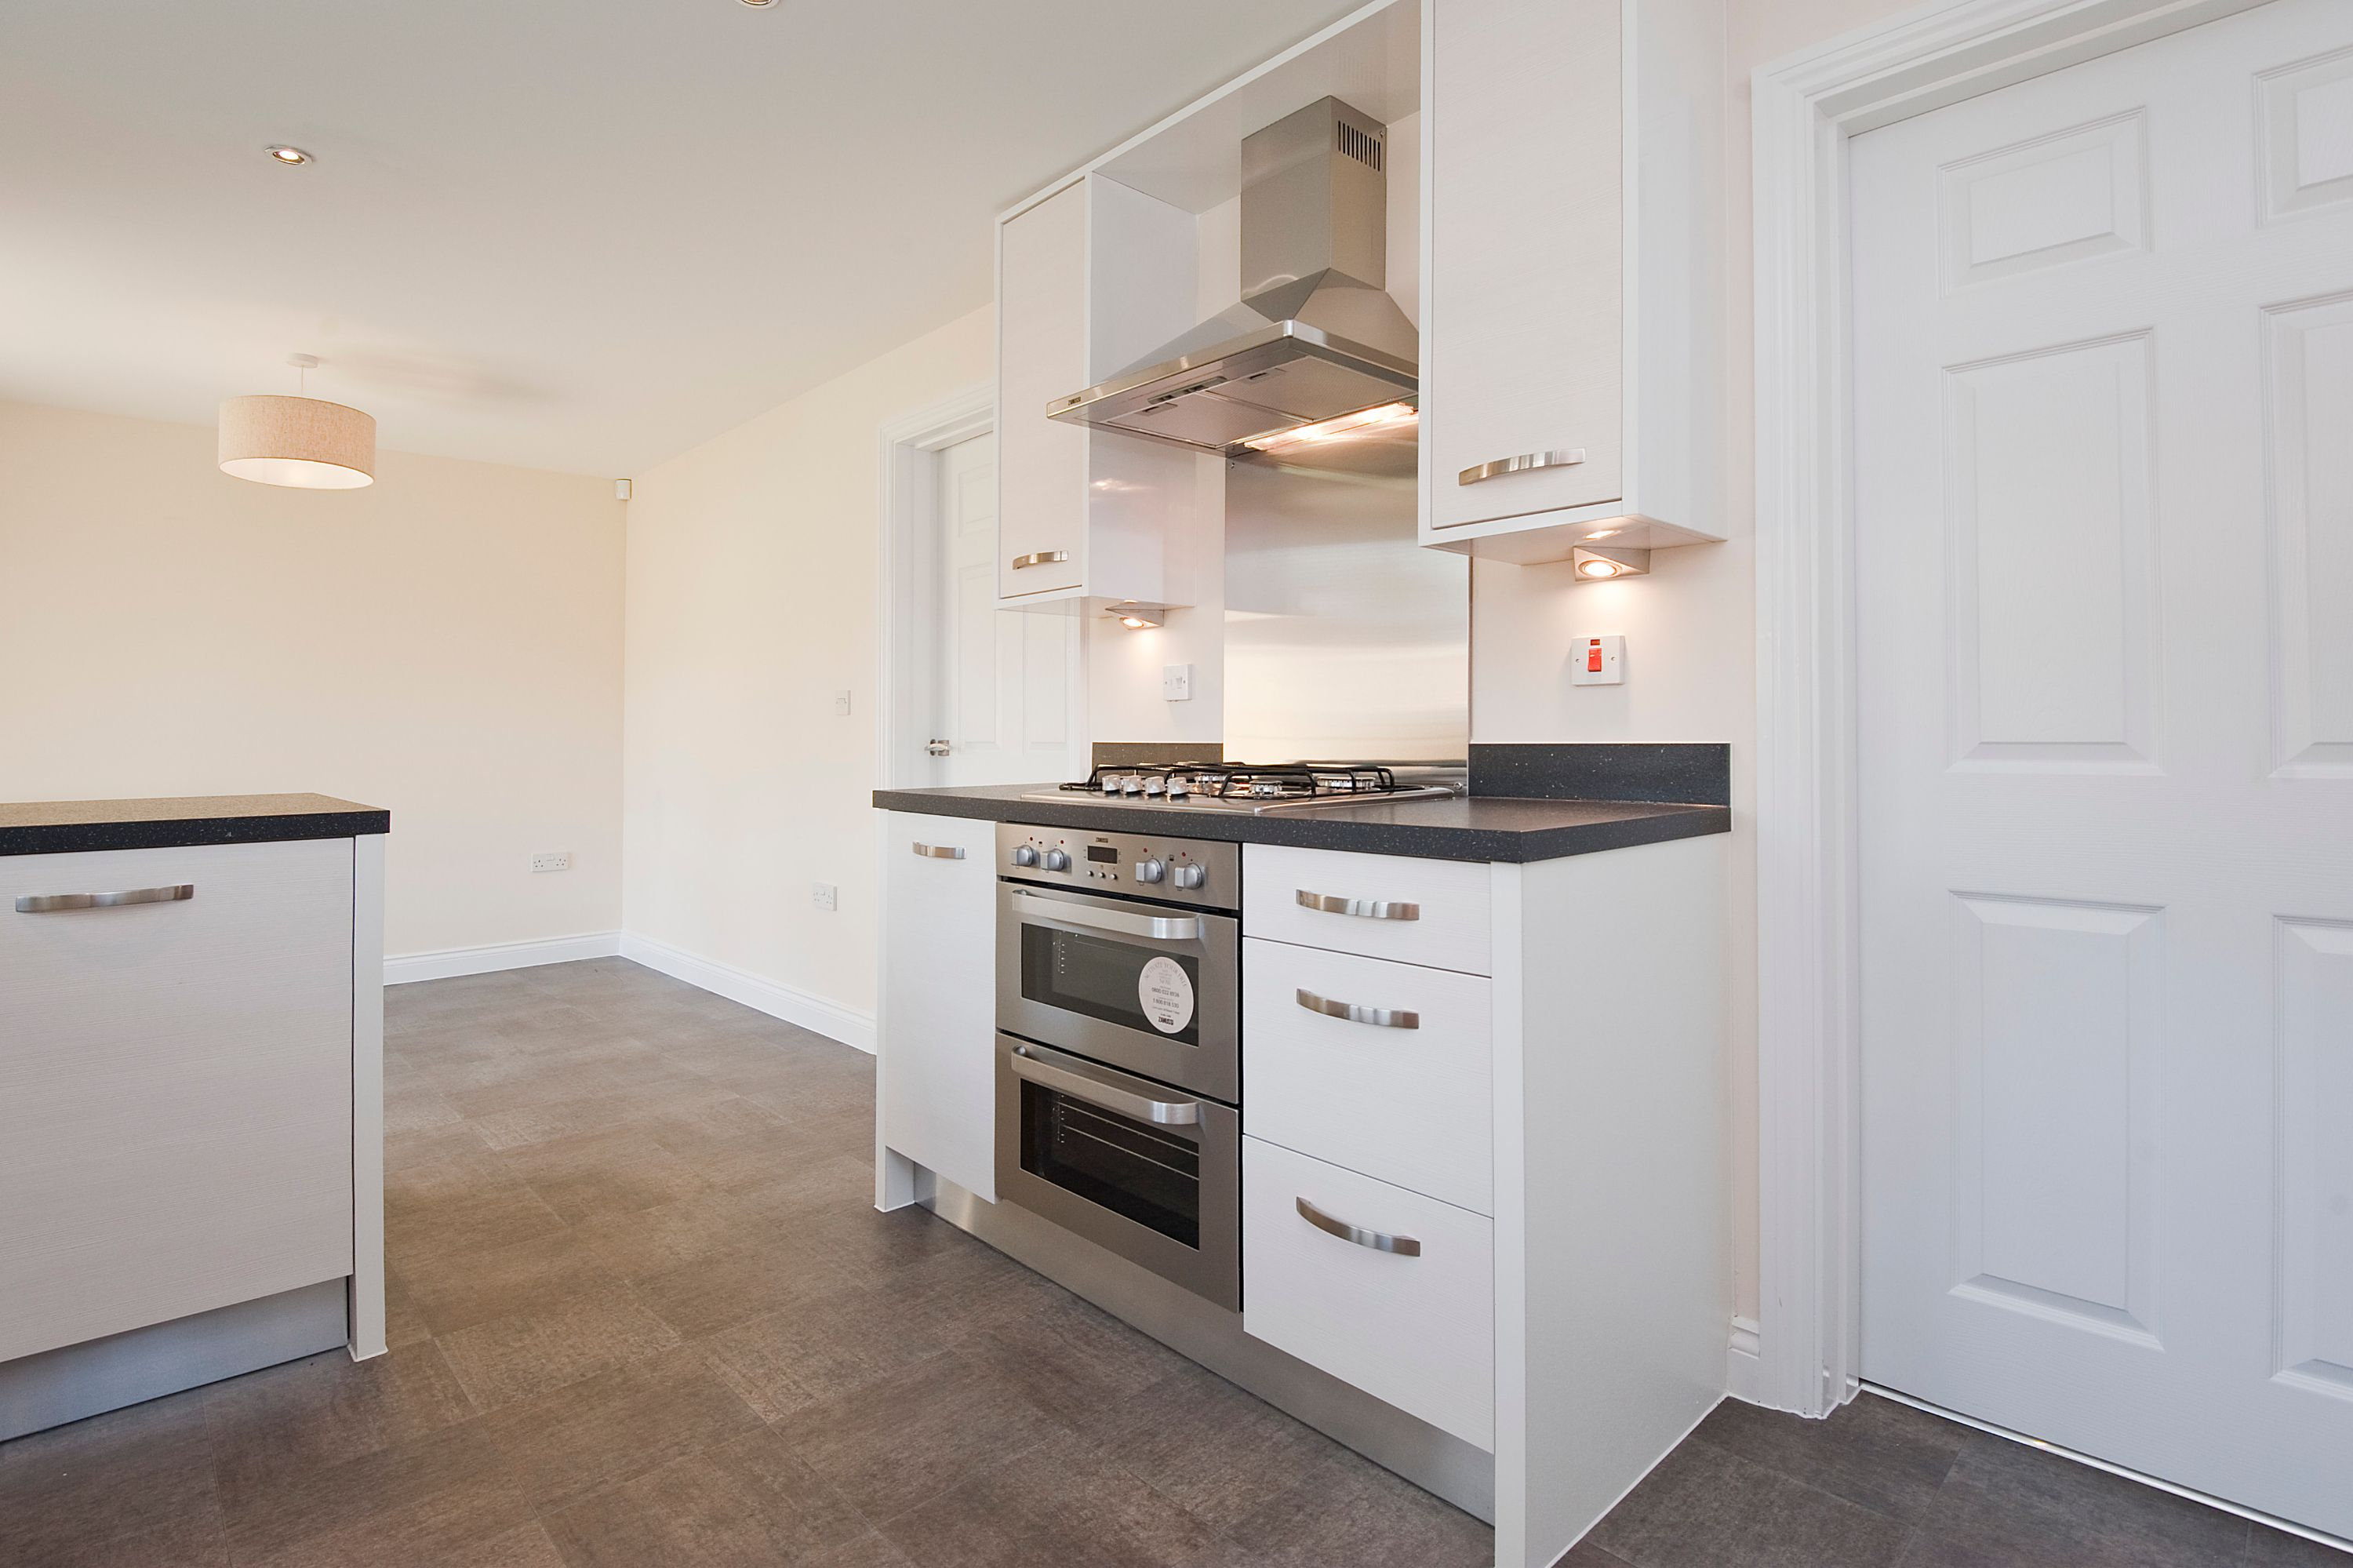 Spacious kitchen diner comes with this great stainless steel oven, hob and extractor combo